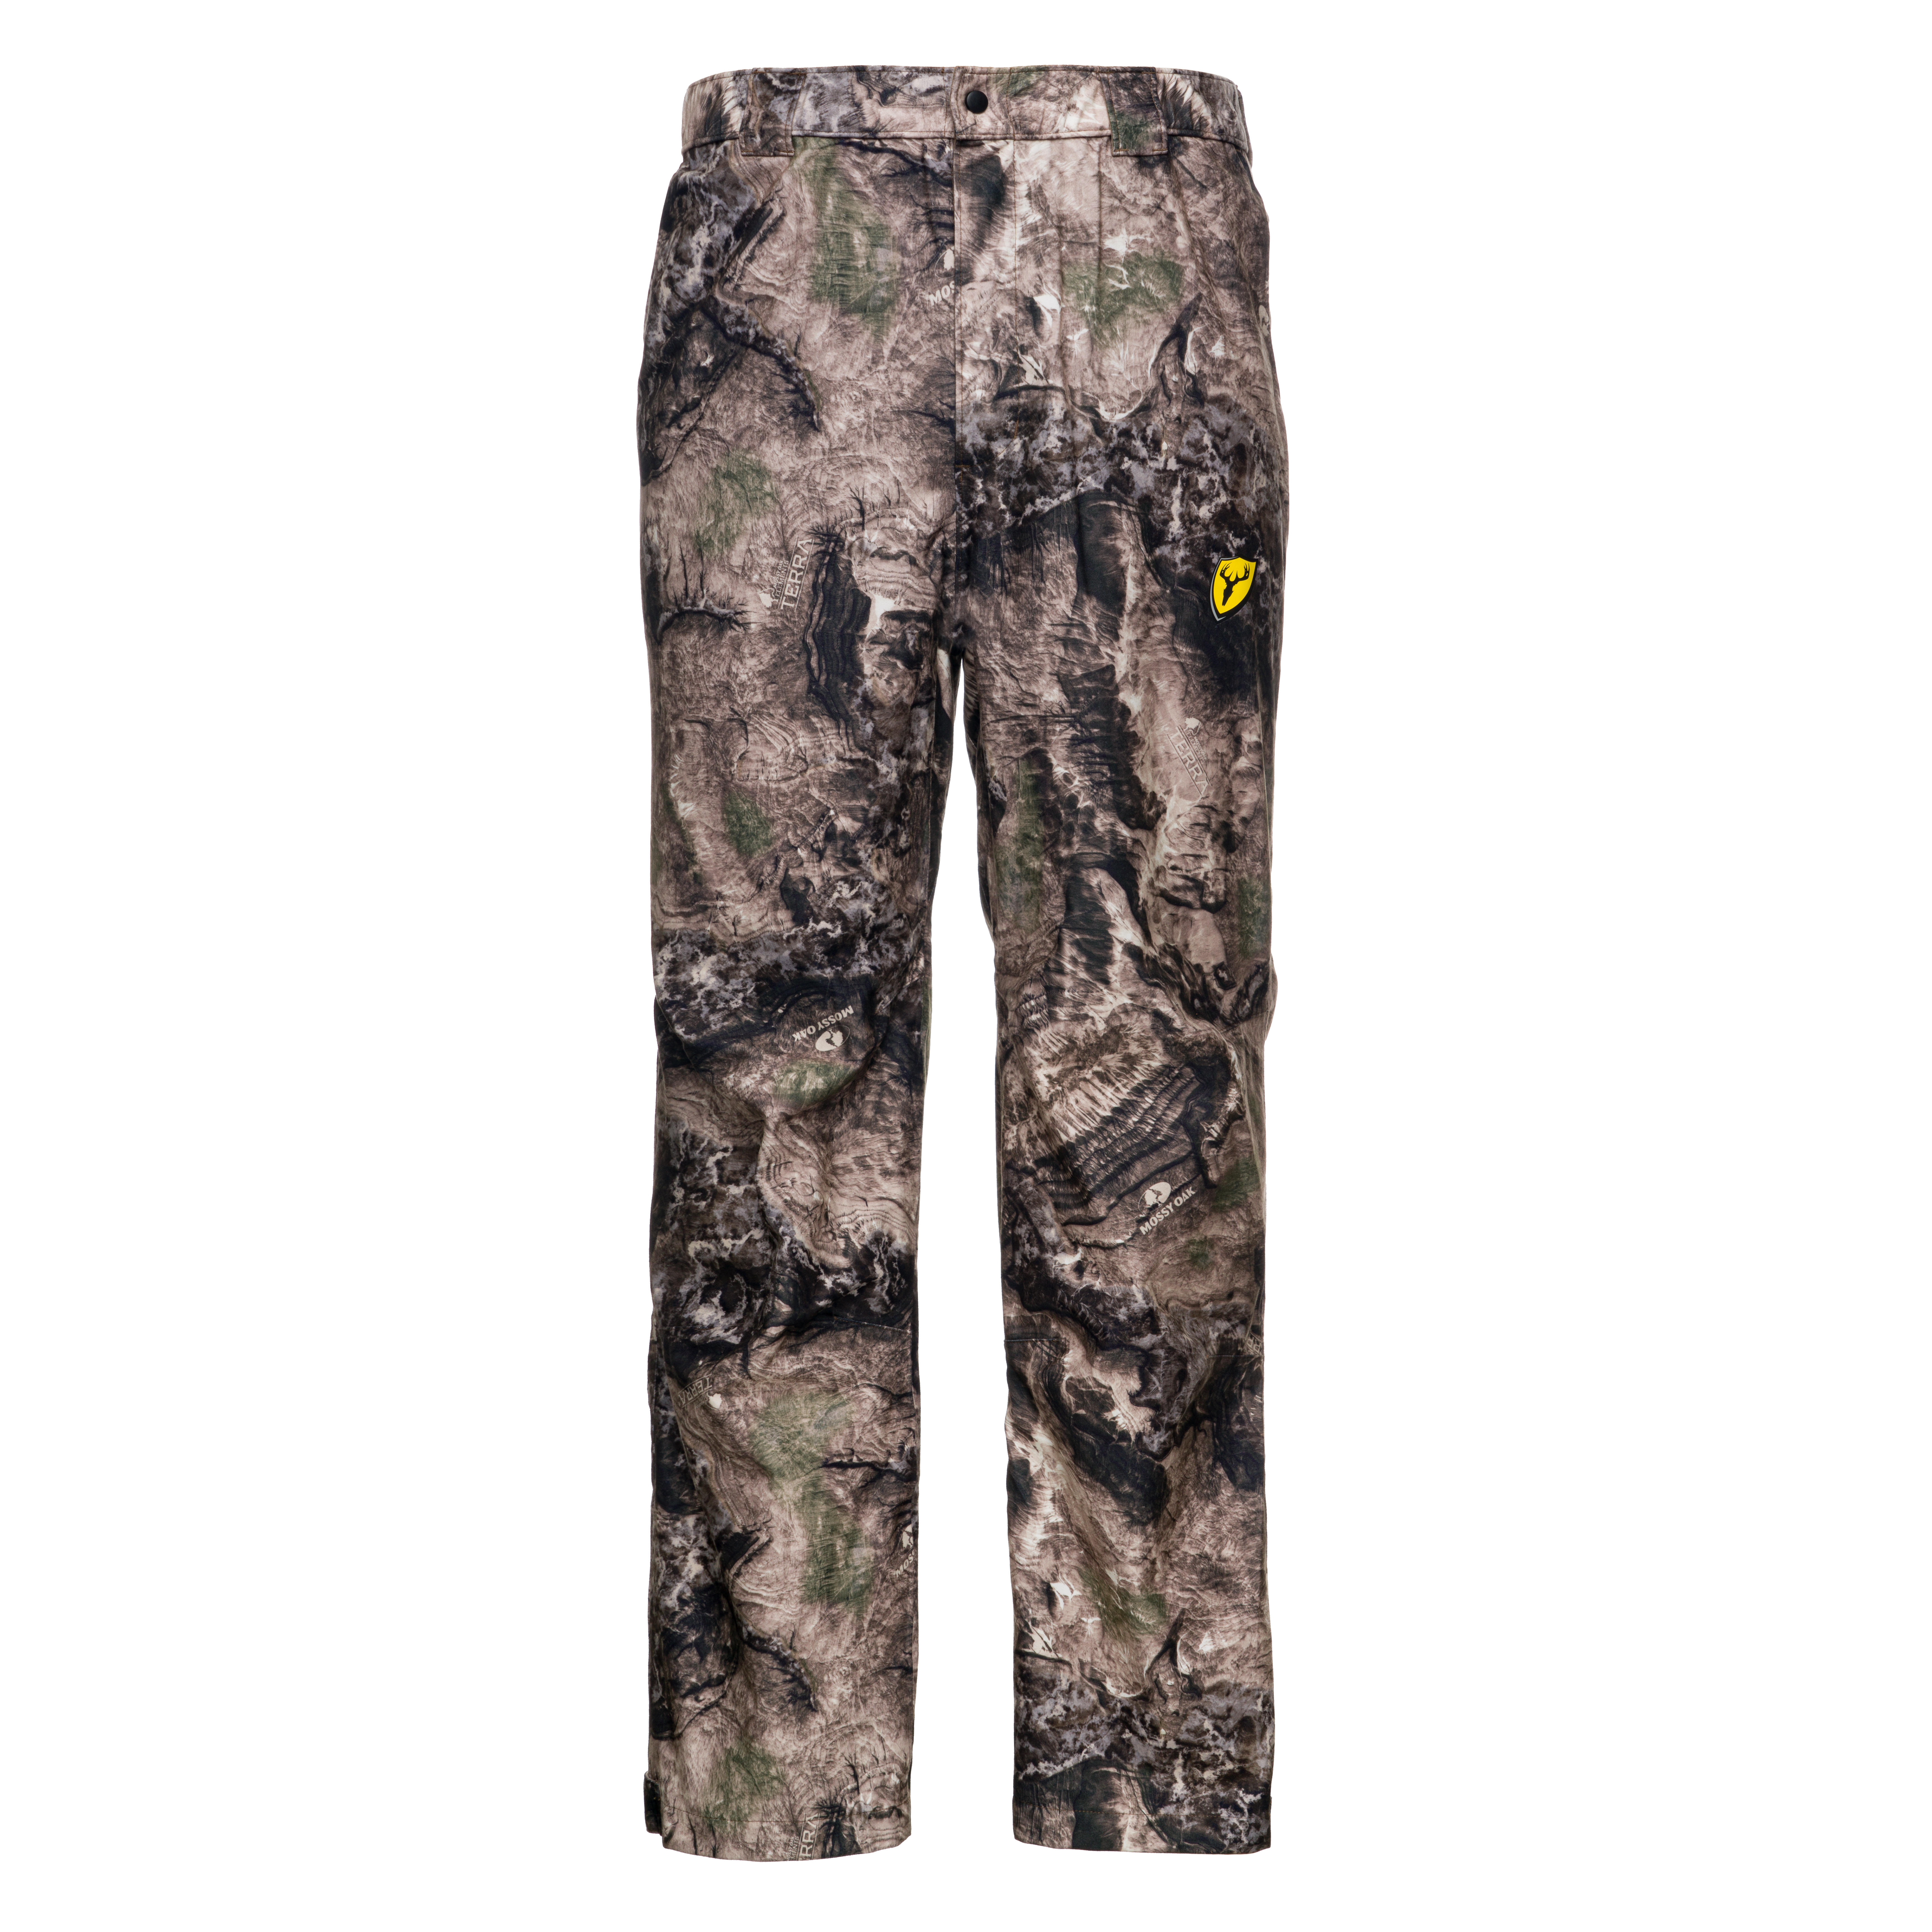 ScentBlocker-1055120-237-Drencher-Pant-rain-suit-realtree-edge-mossy-oak-country-dna-coyote-hunting-big-tall-bigcamo